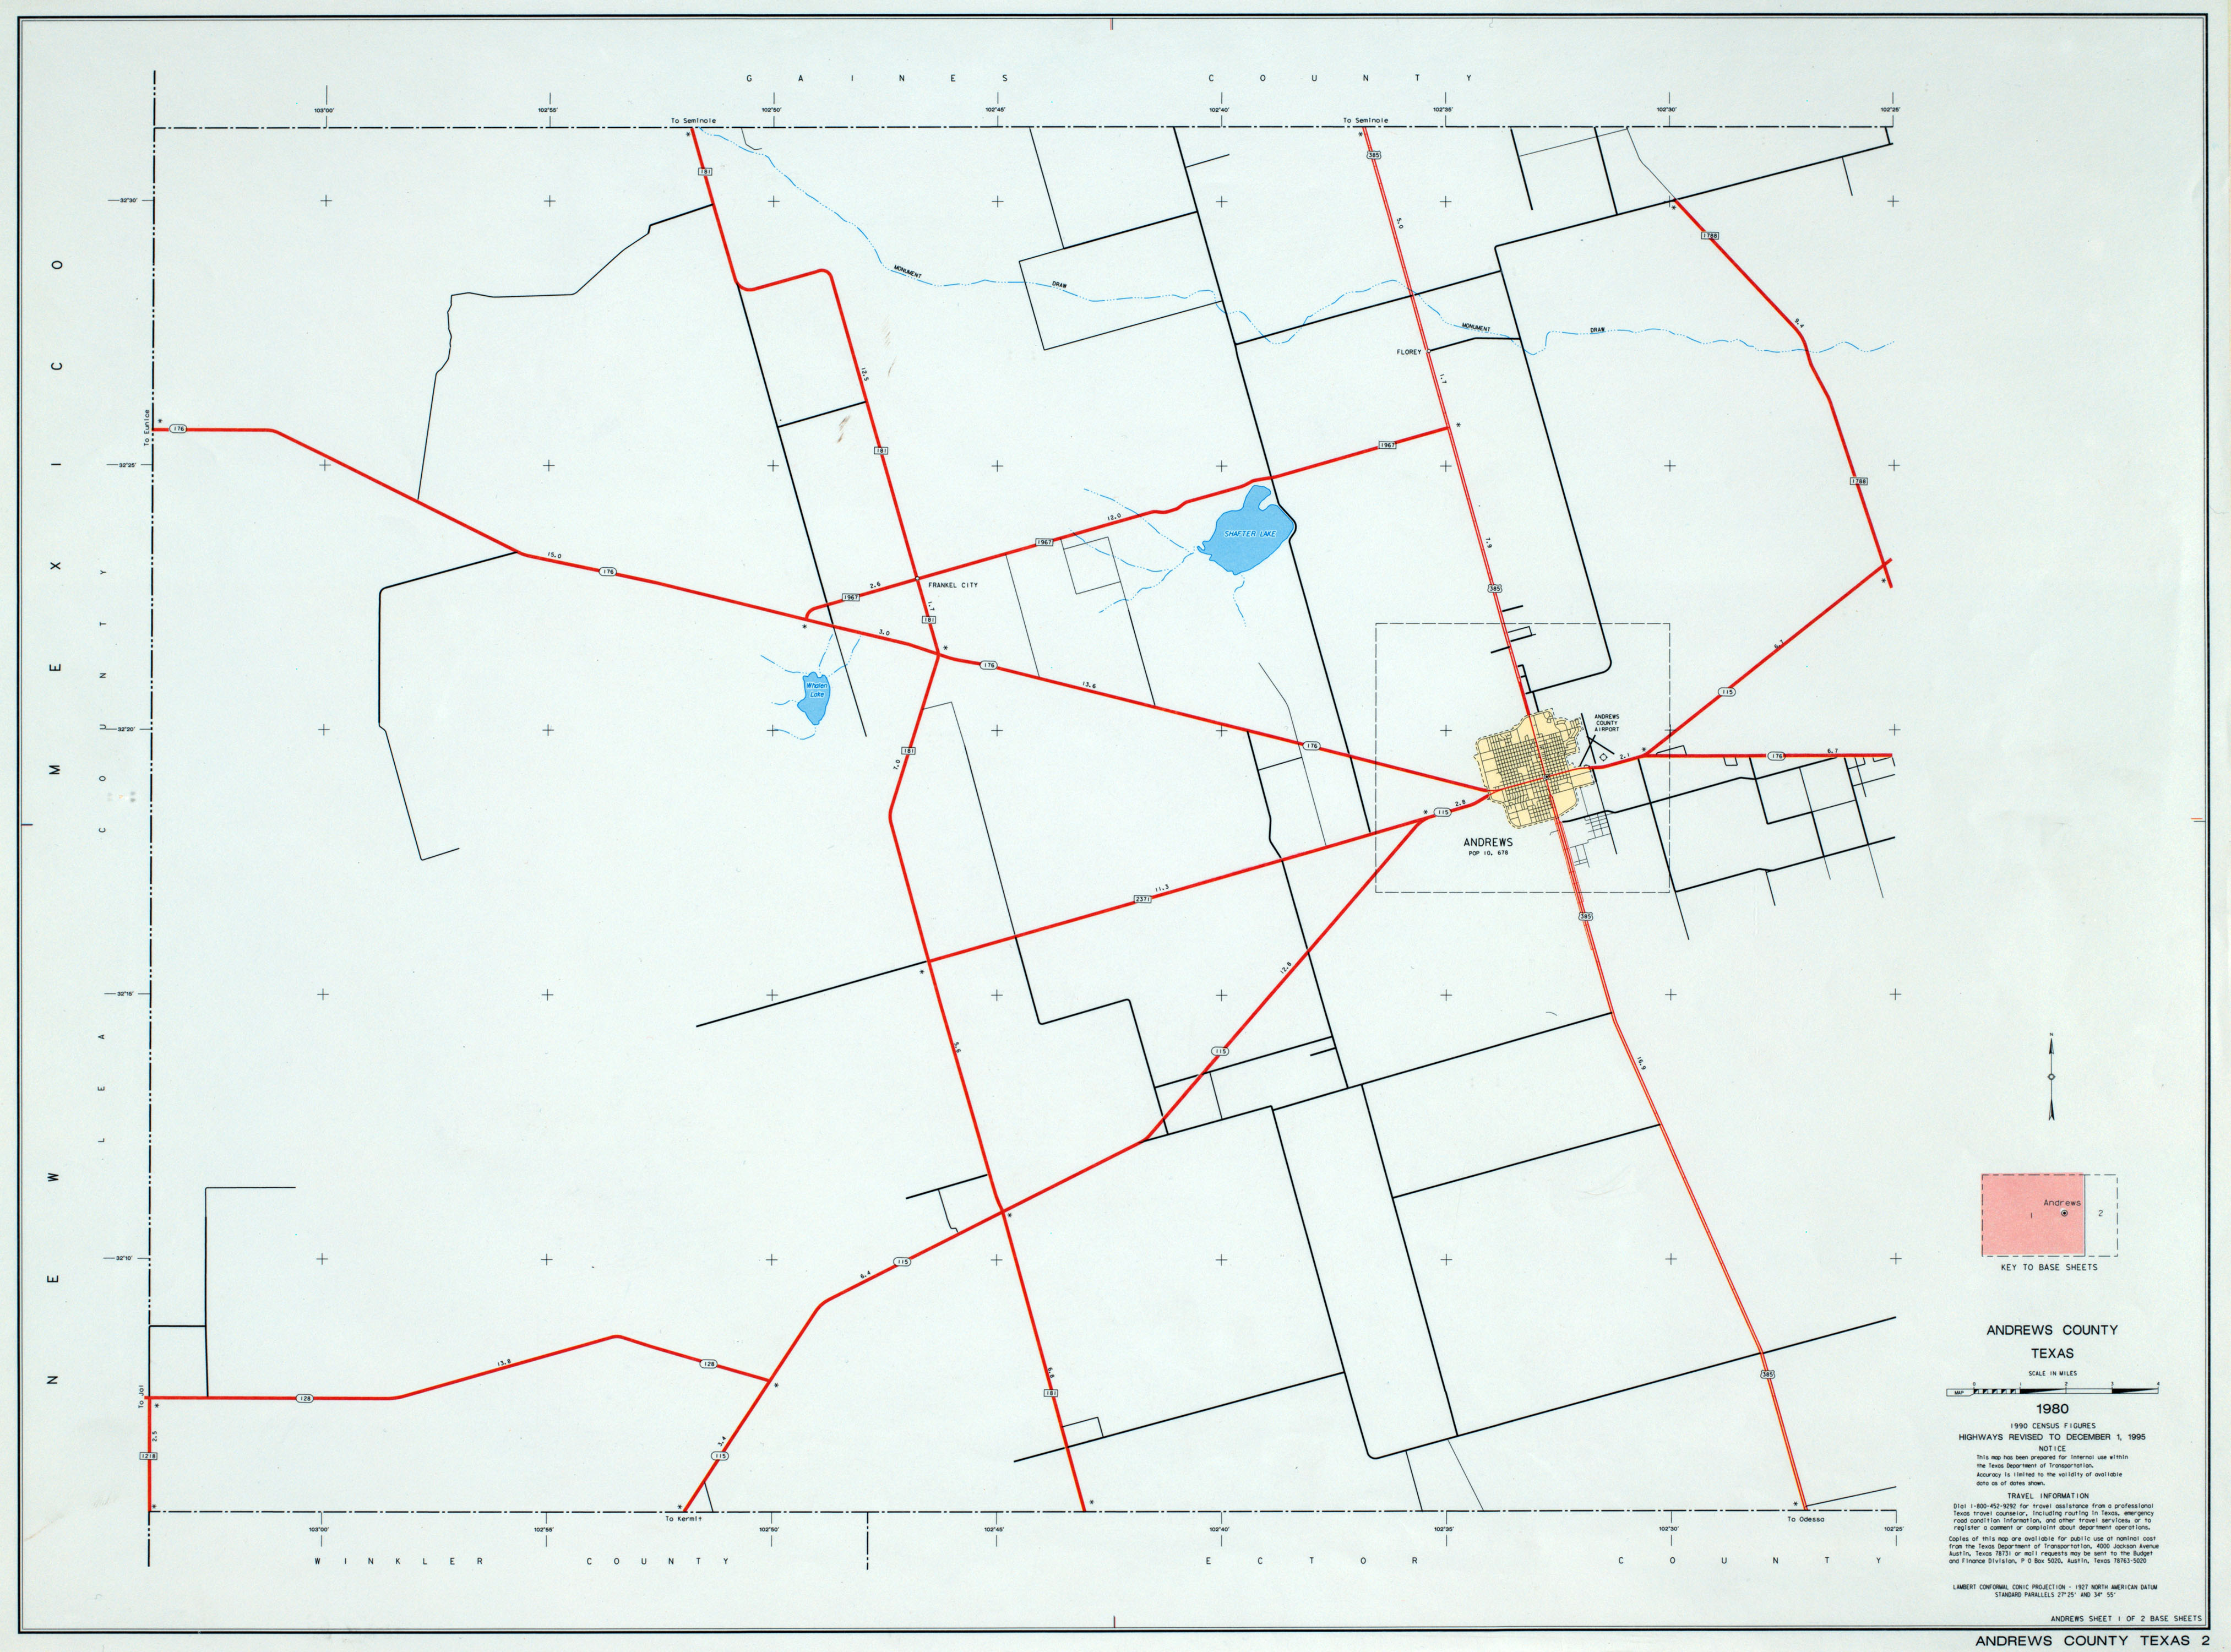 Texas County Highway Maps Browse - Perry-Castañeda Map ... Andrews County